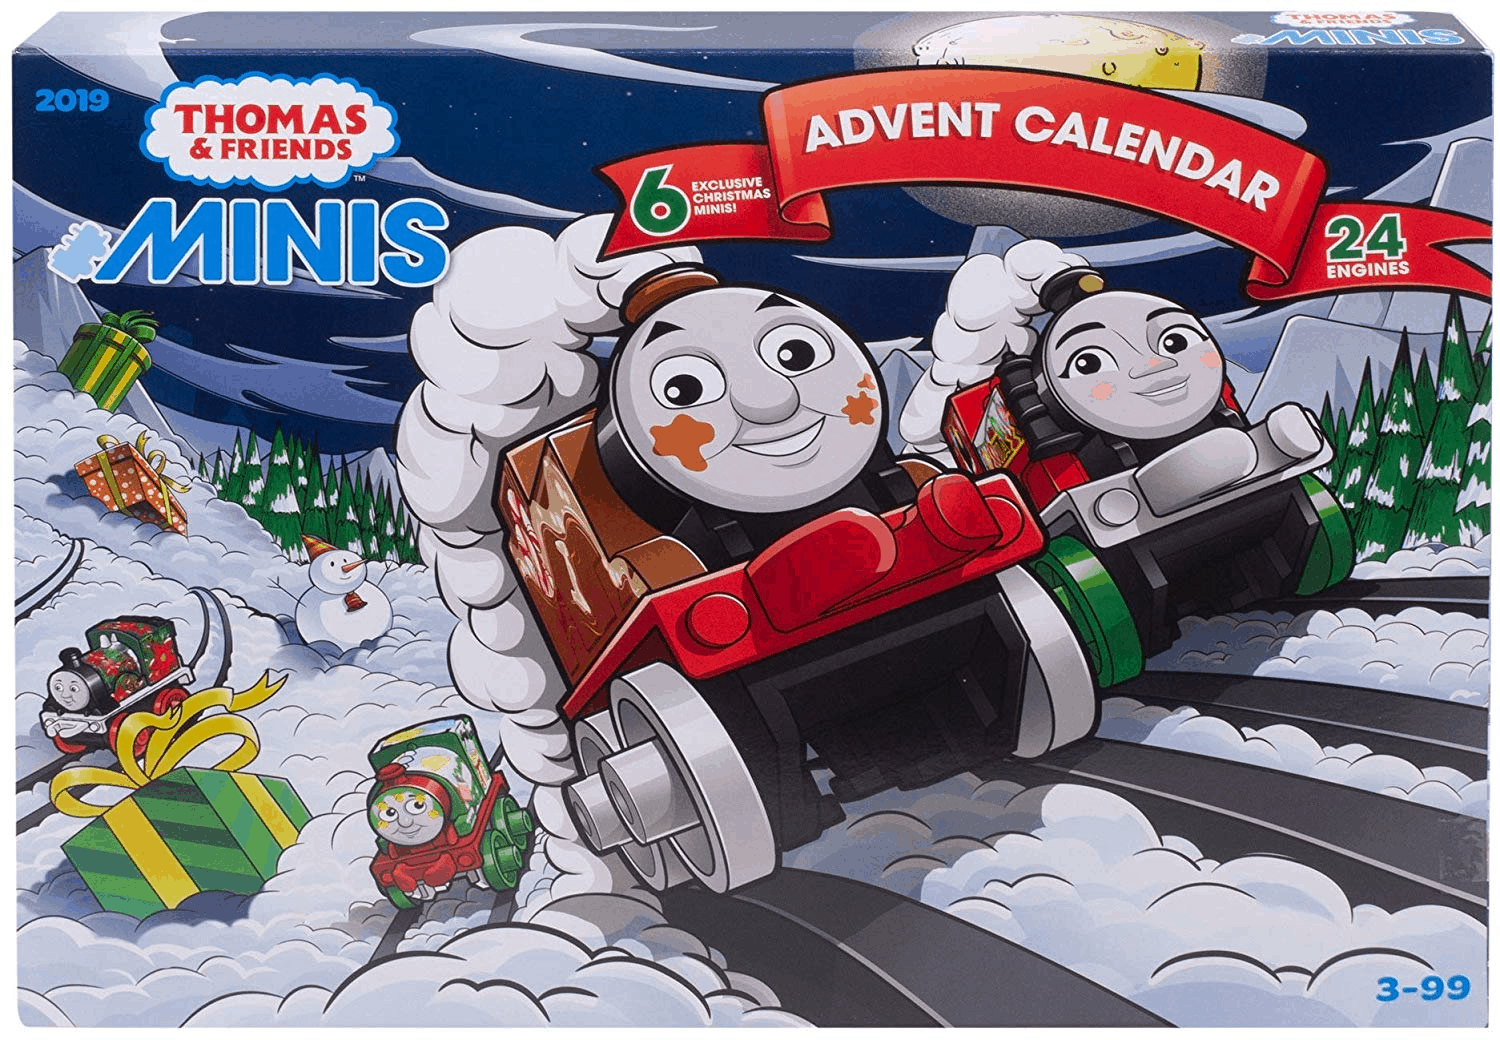 2019 Fisher-Price Thomas & Friends MINIS Advent Calendar PRICE DROP!